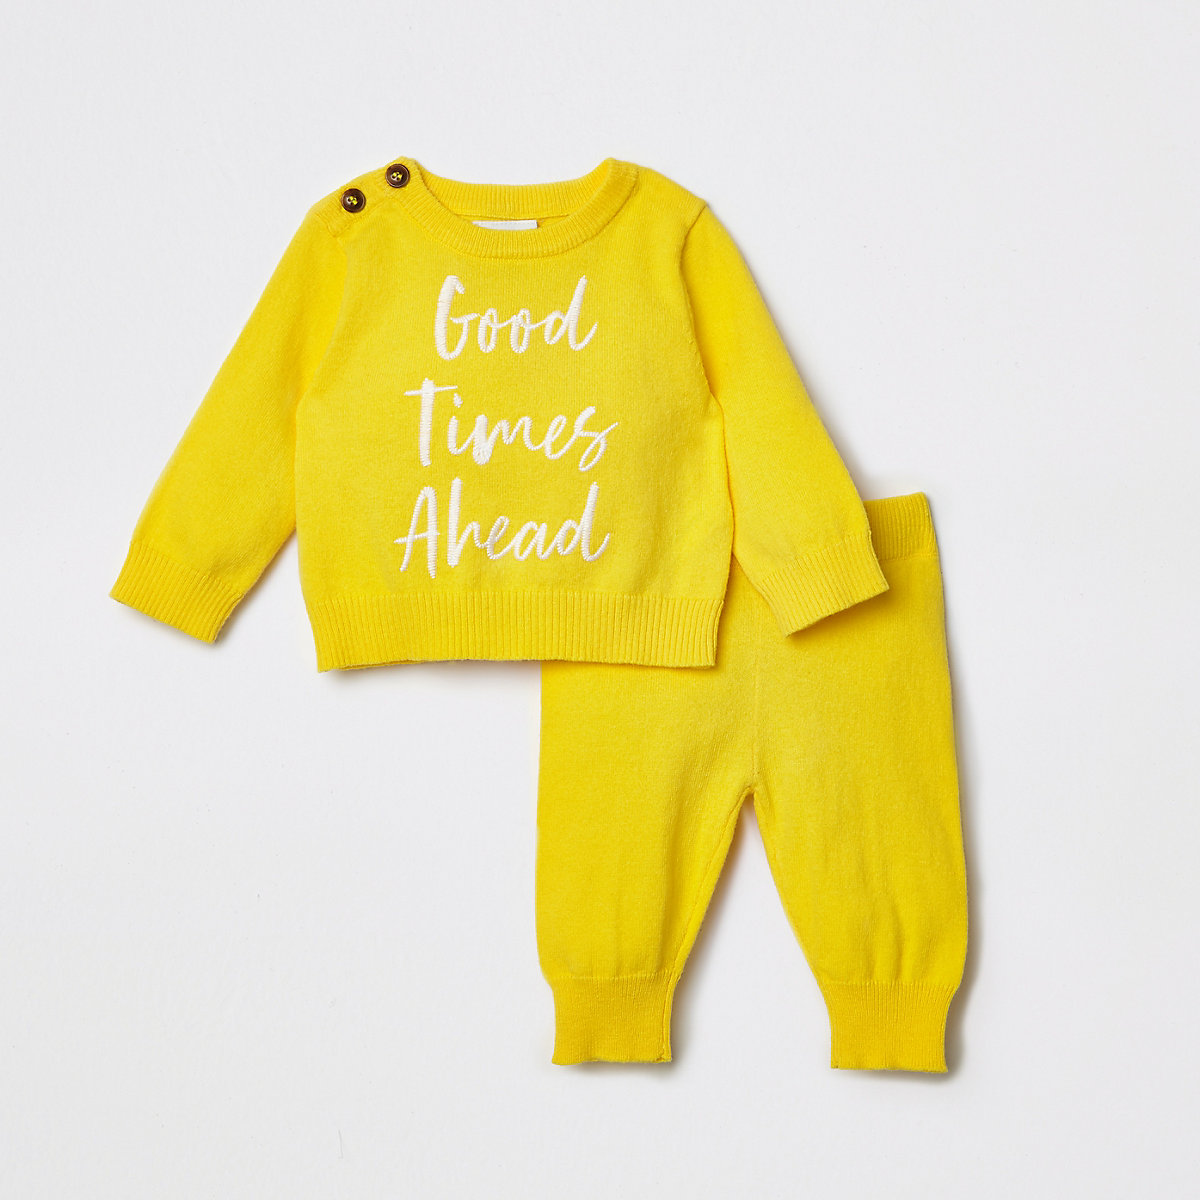 Baby yellow 'Good times ahead' jumper outfit